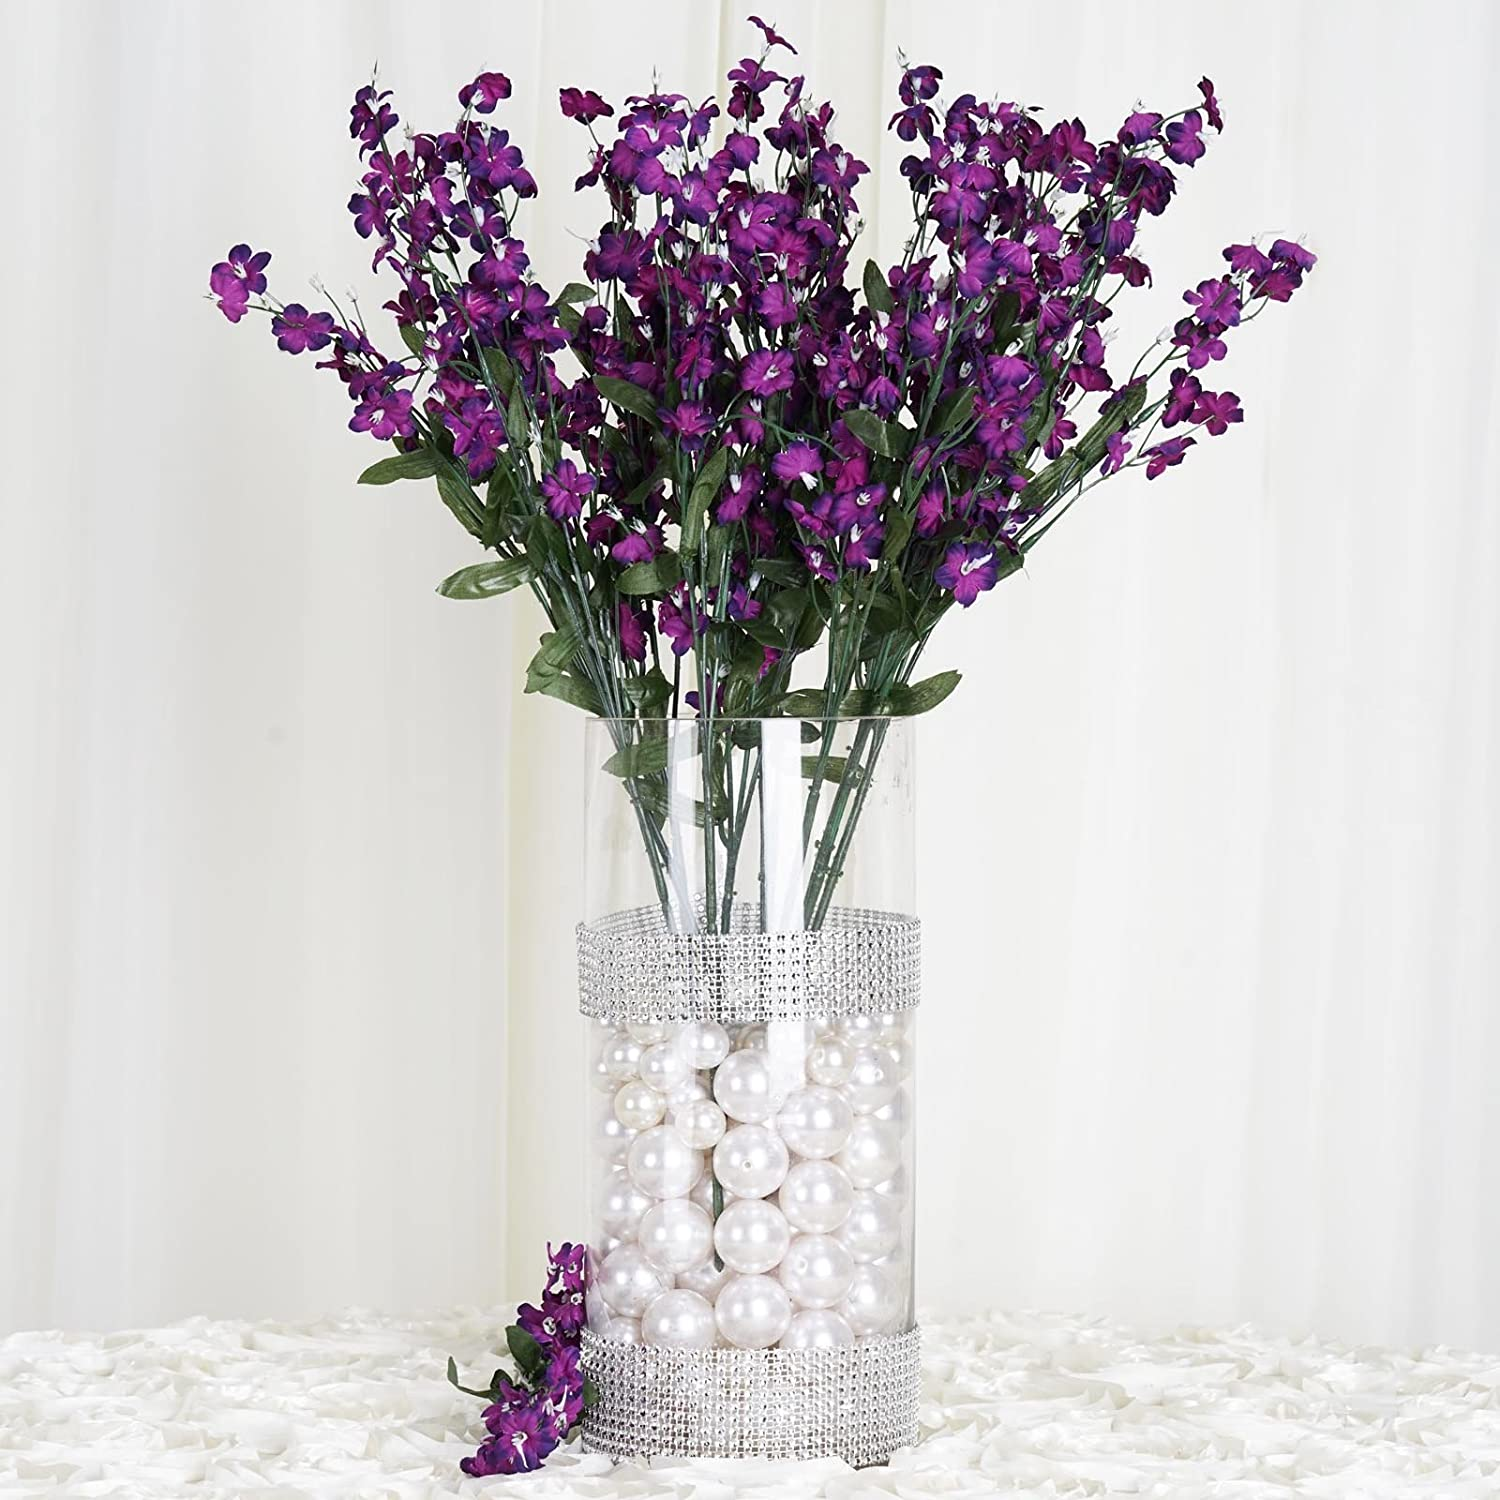 Amazon efavormart 12 bushes baby breath artificial filler amazon efavormart 12 bushes baby breath artificial filler flowers for diy wedding bouquets centerpieces party home decoration purple home kitchen izmirmasajfo